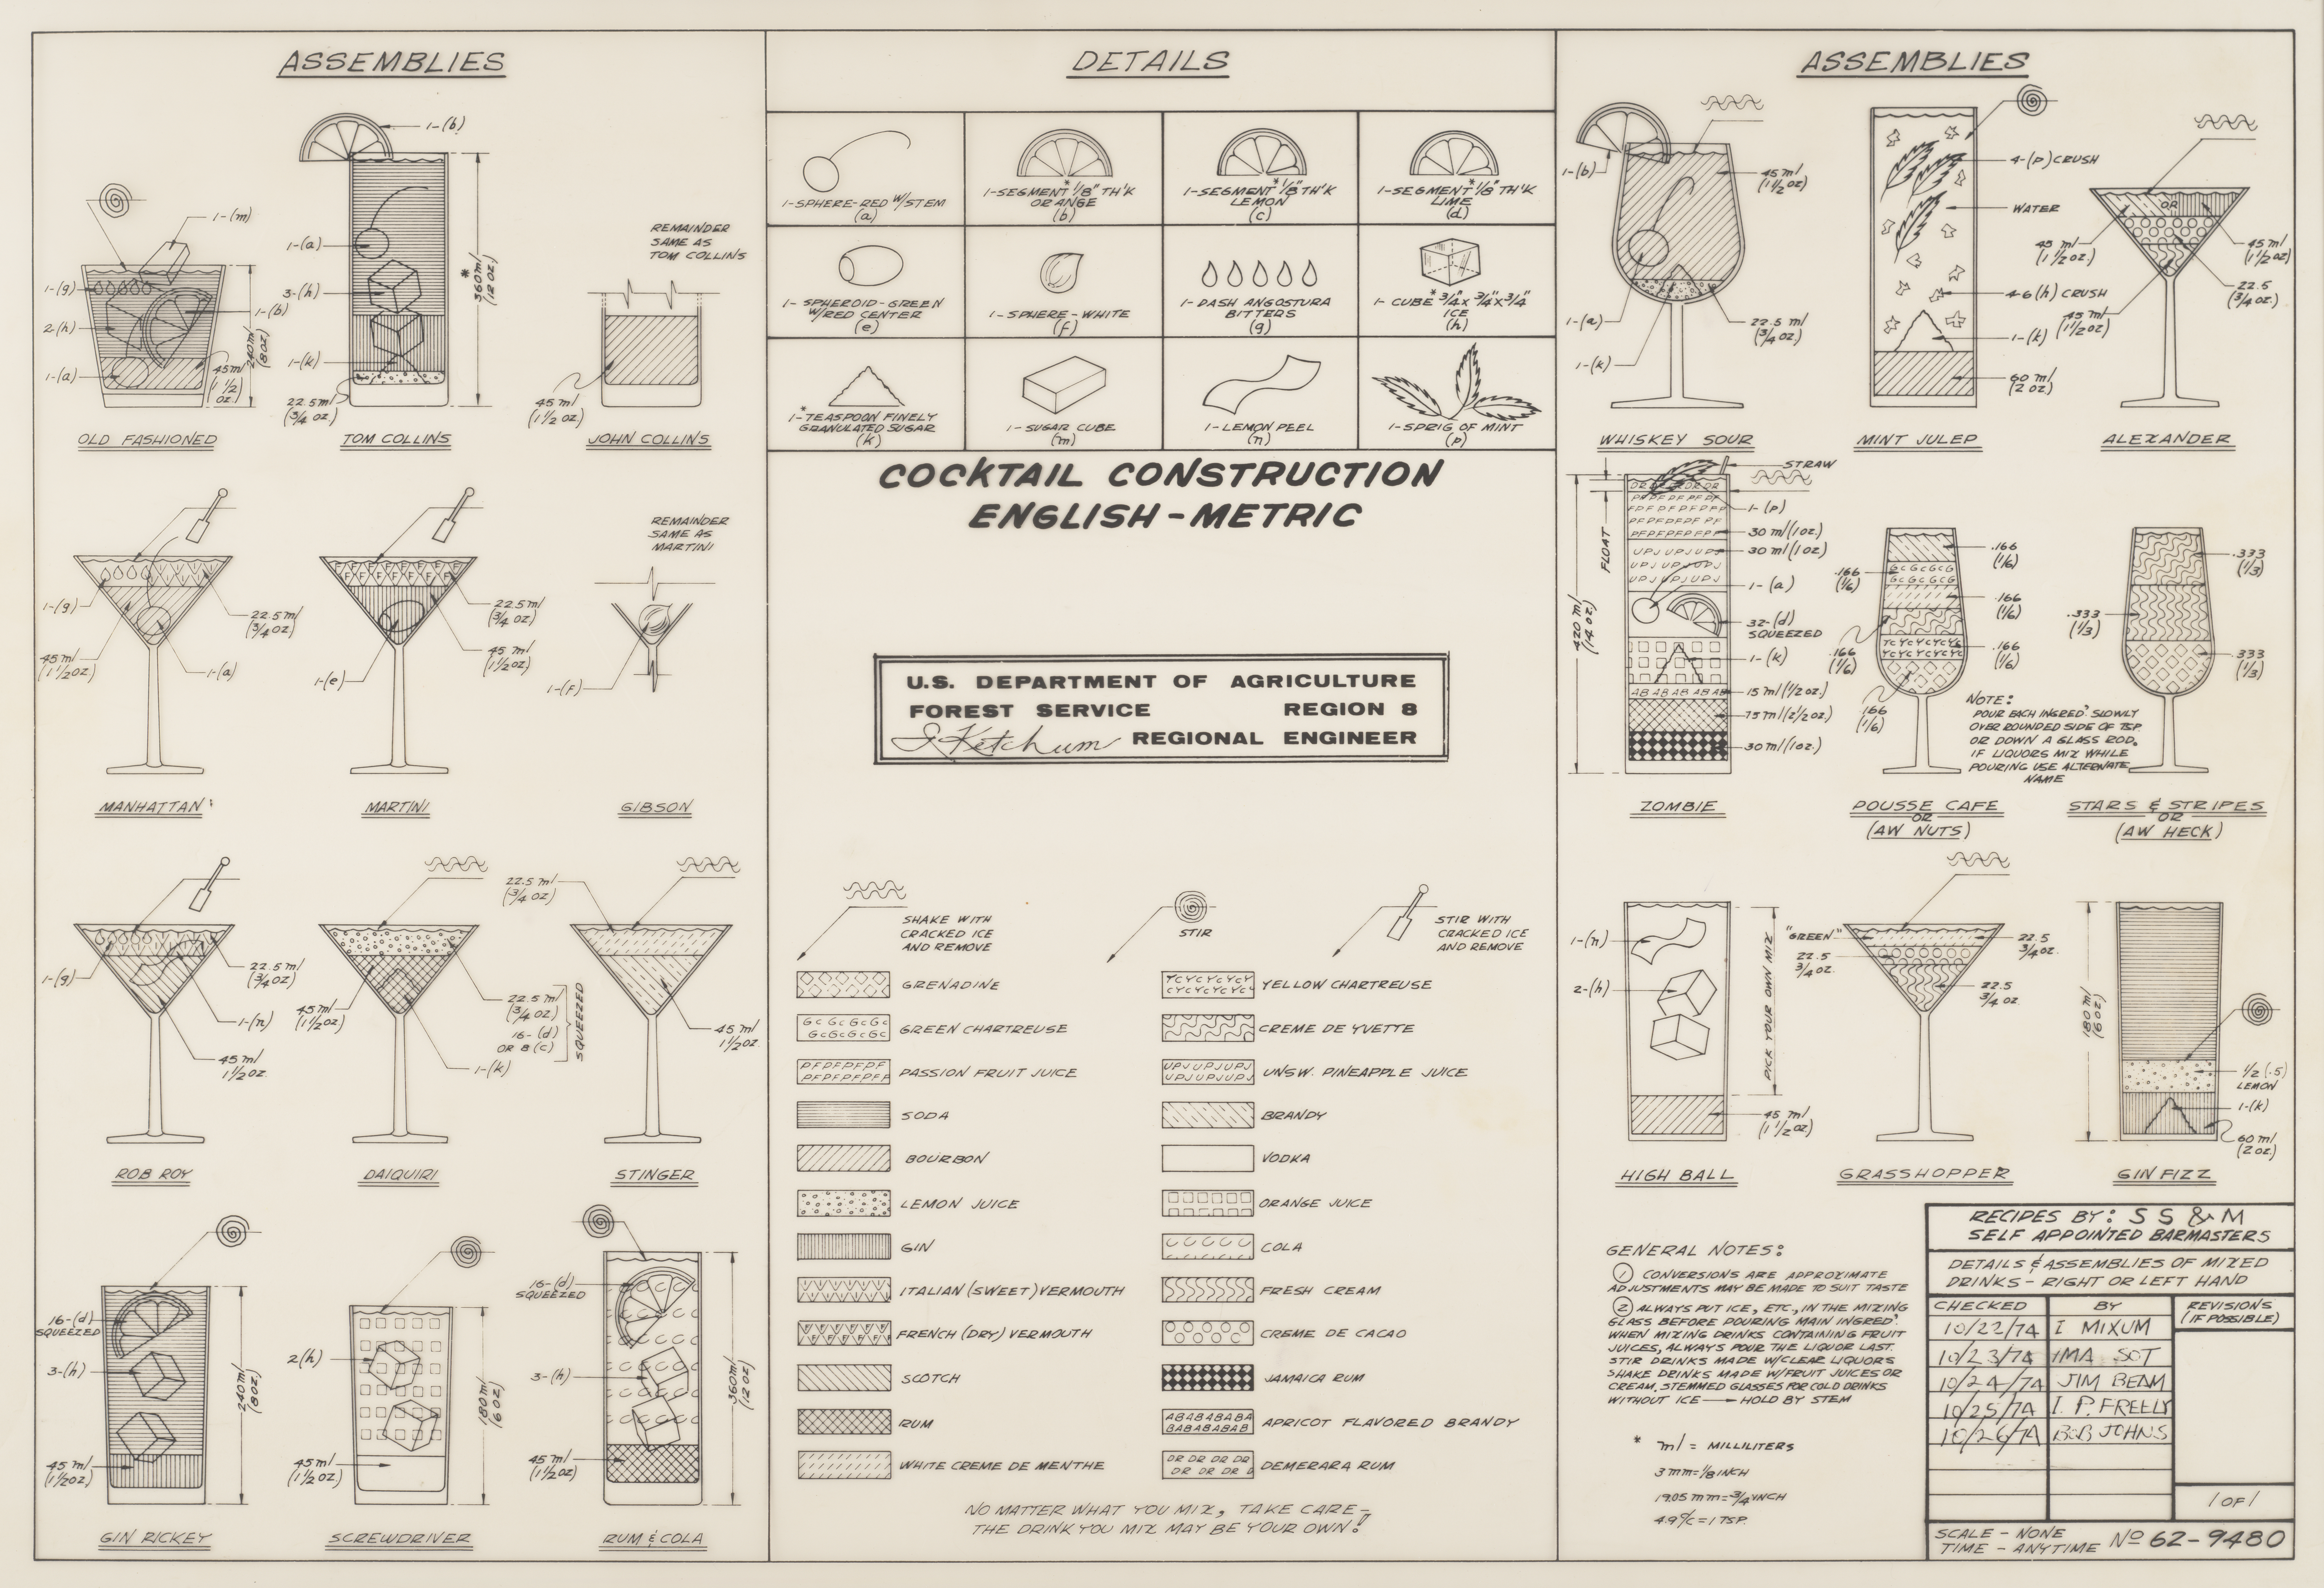 cocktail_construction_chart_1974.jpg